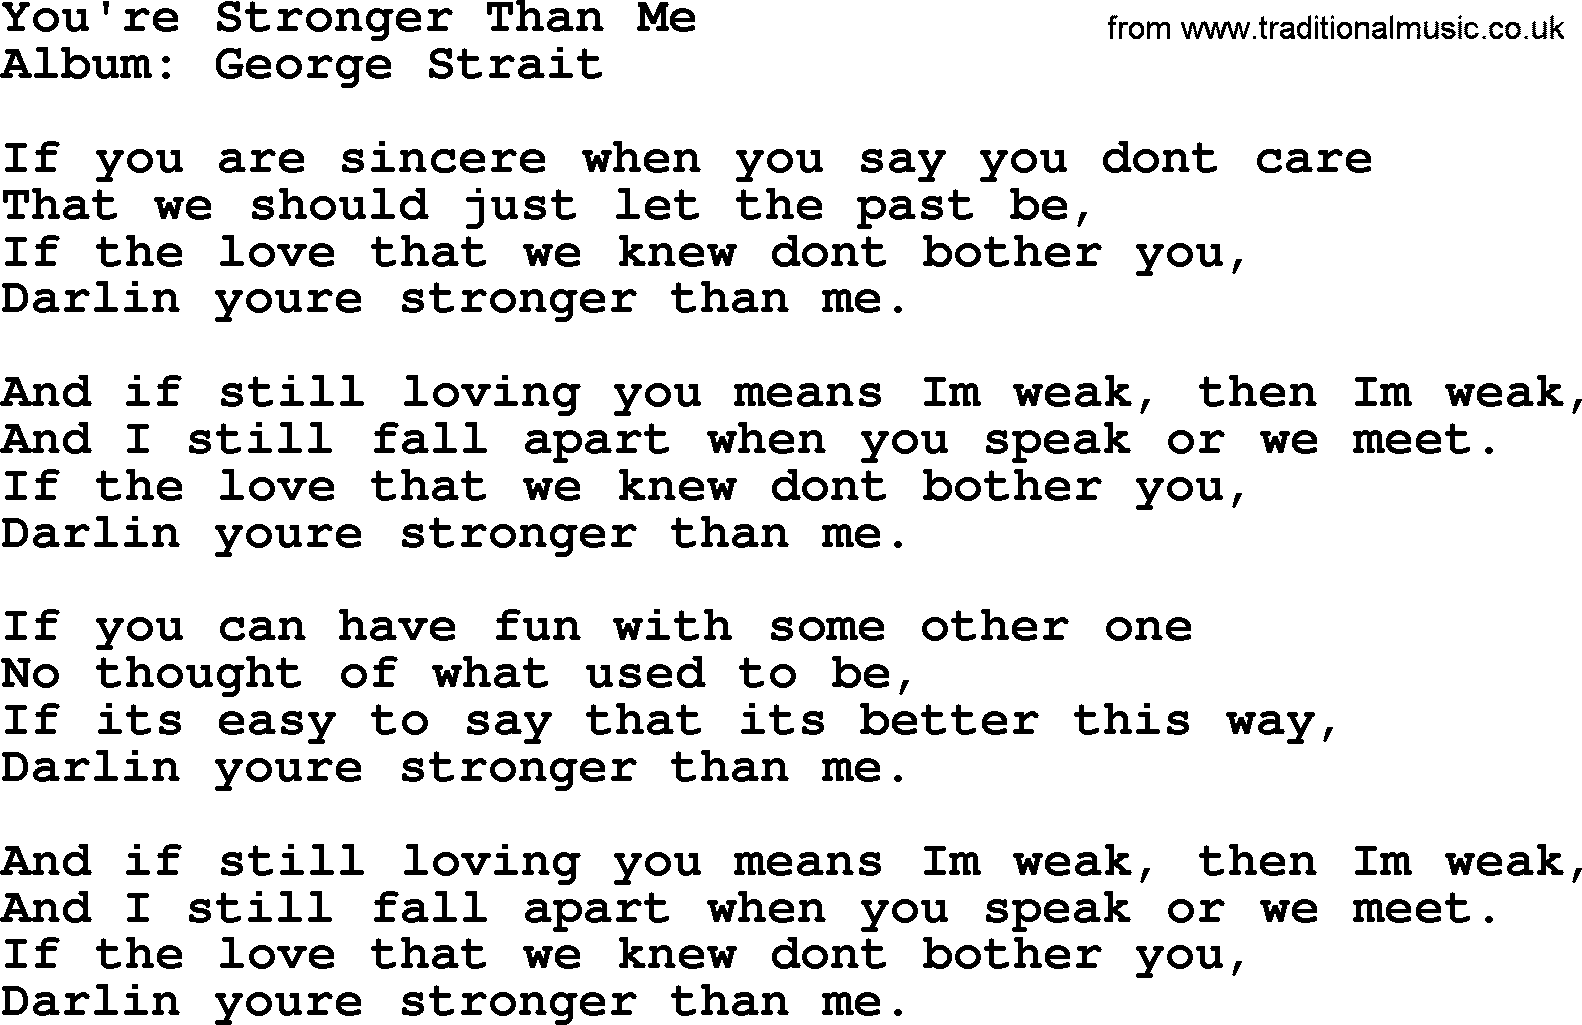 Youre stronger than me by george strait lyrics george strait song youre stronger than me lyrics hexwebz Image collections